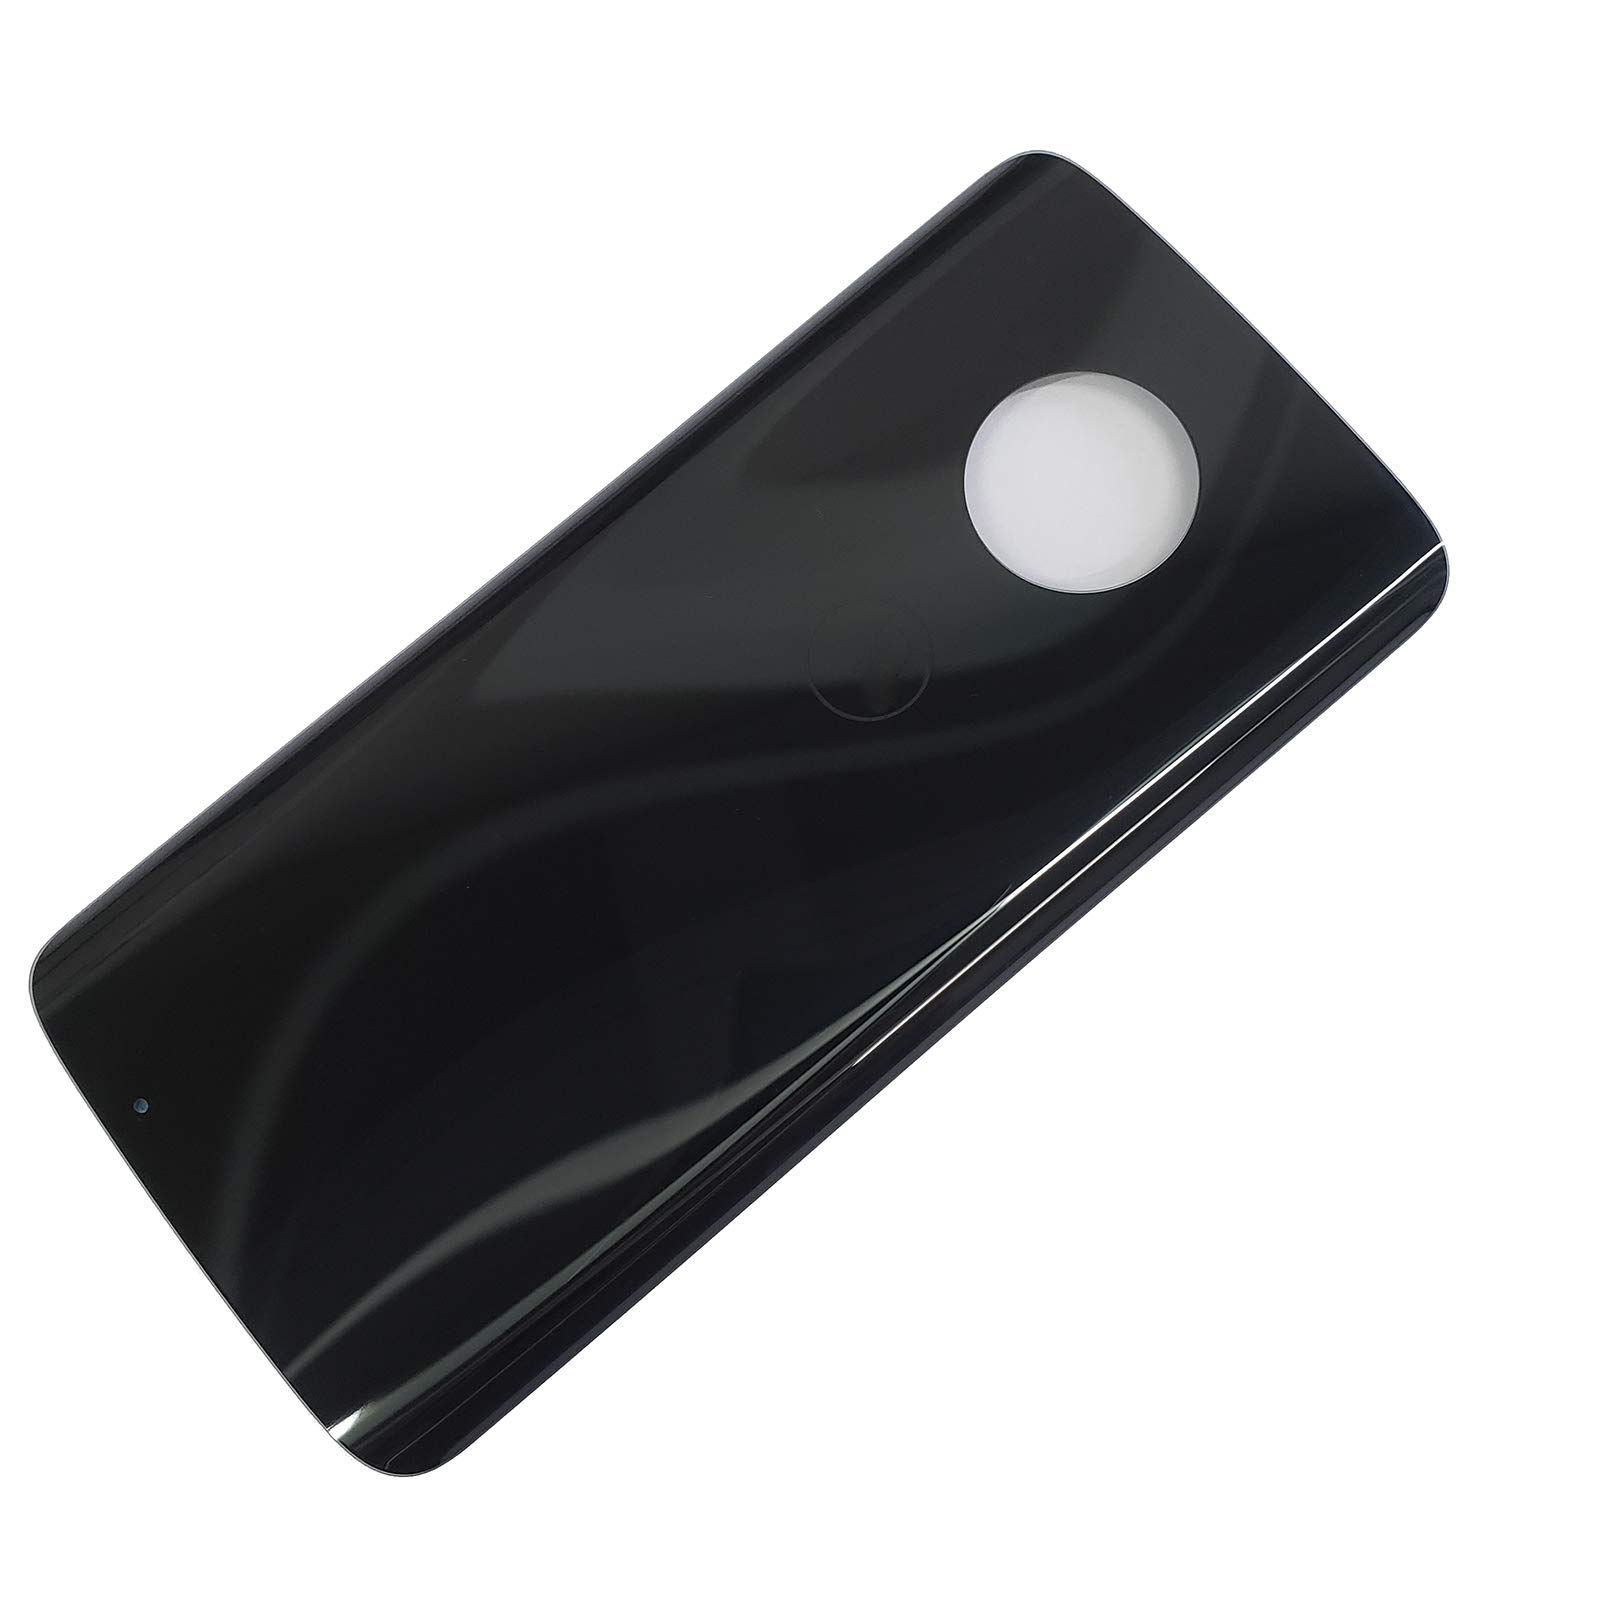 Eaglewireless Compatible Rear Panel Cover Back Glass Replacement Parts with Tape for Motorola Moto G6 XT1925 XT1925-6-Black by Eaglewireless